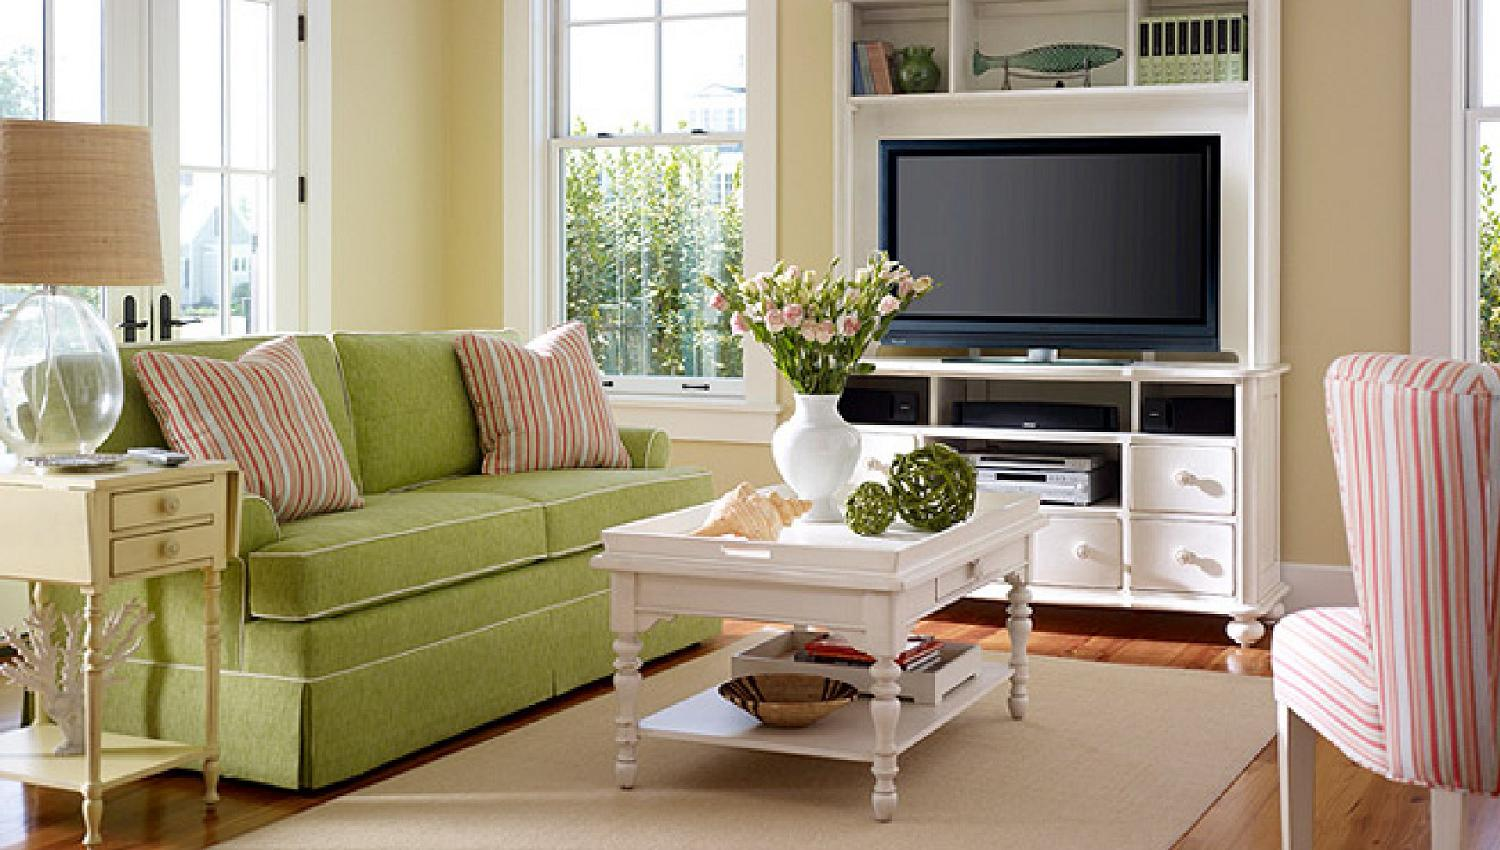 Choosing Wisely When It Comes To Living Room Furniture HomeAdvisor